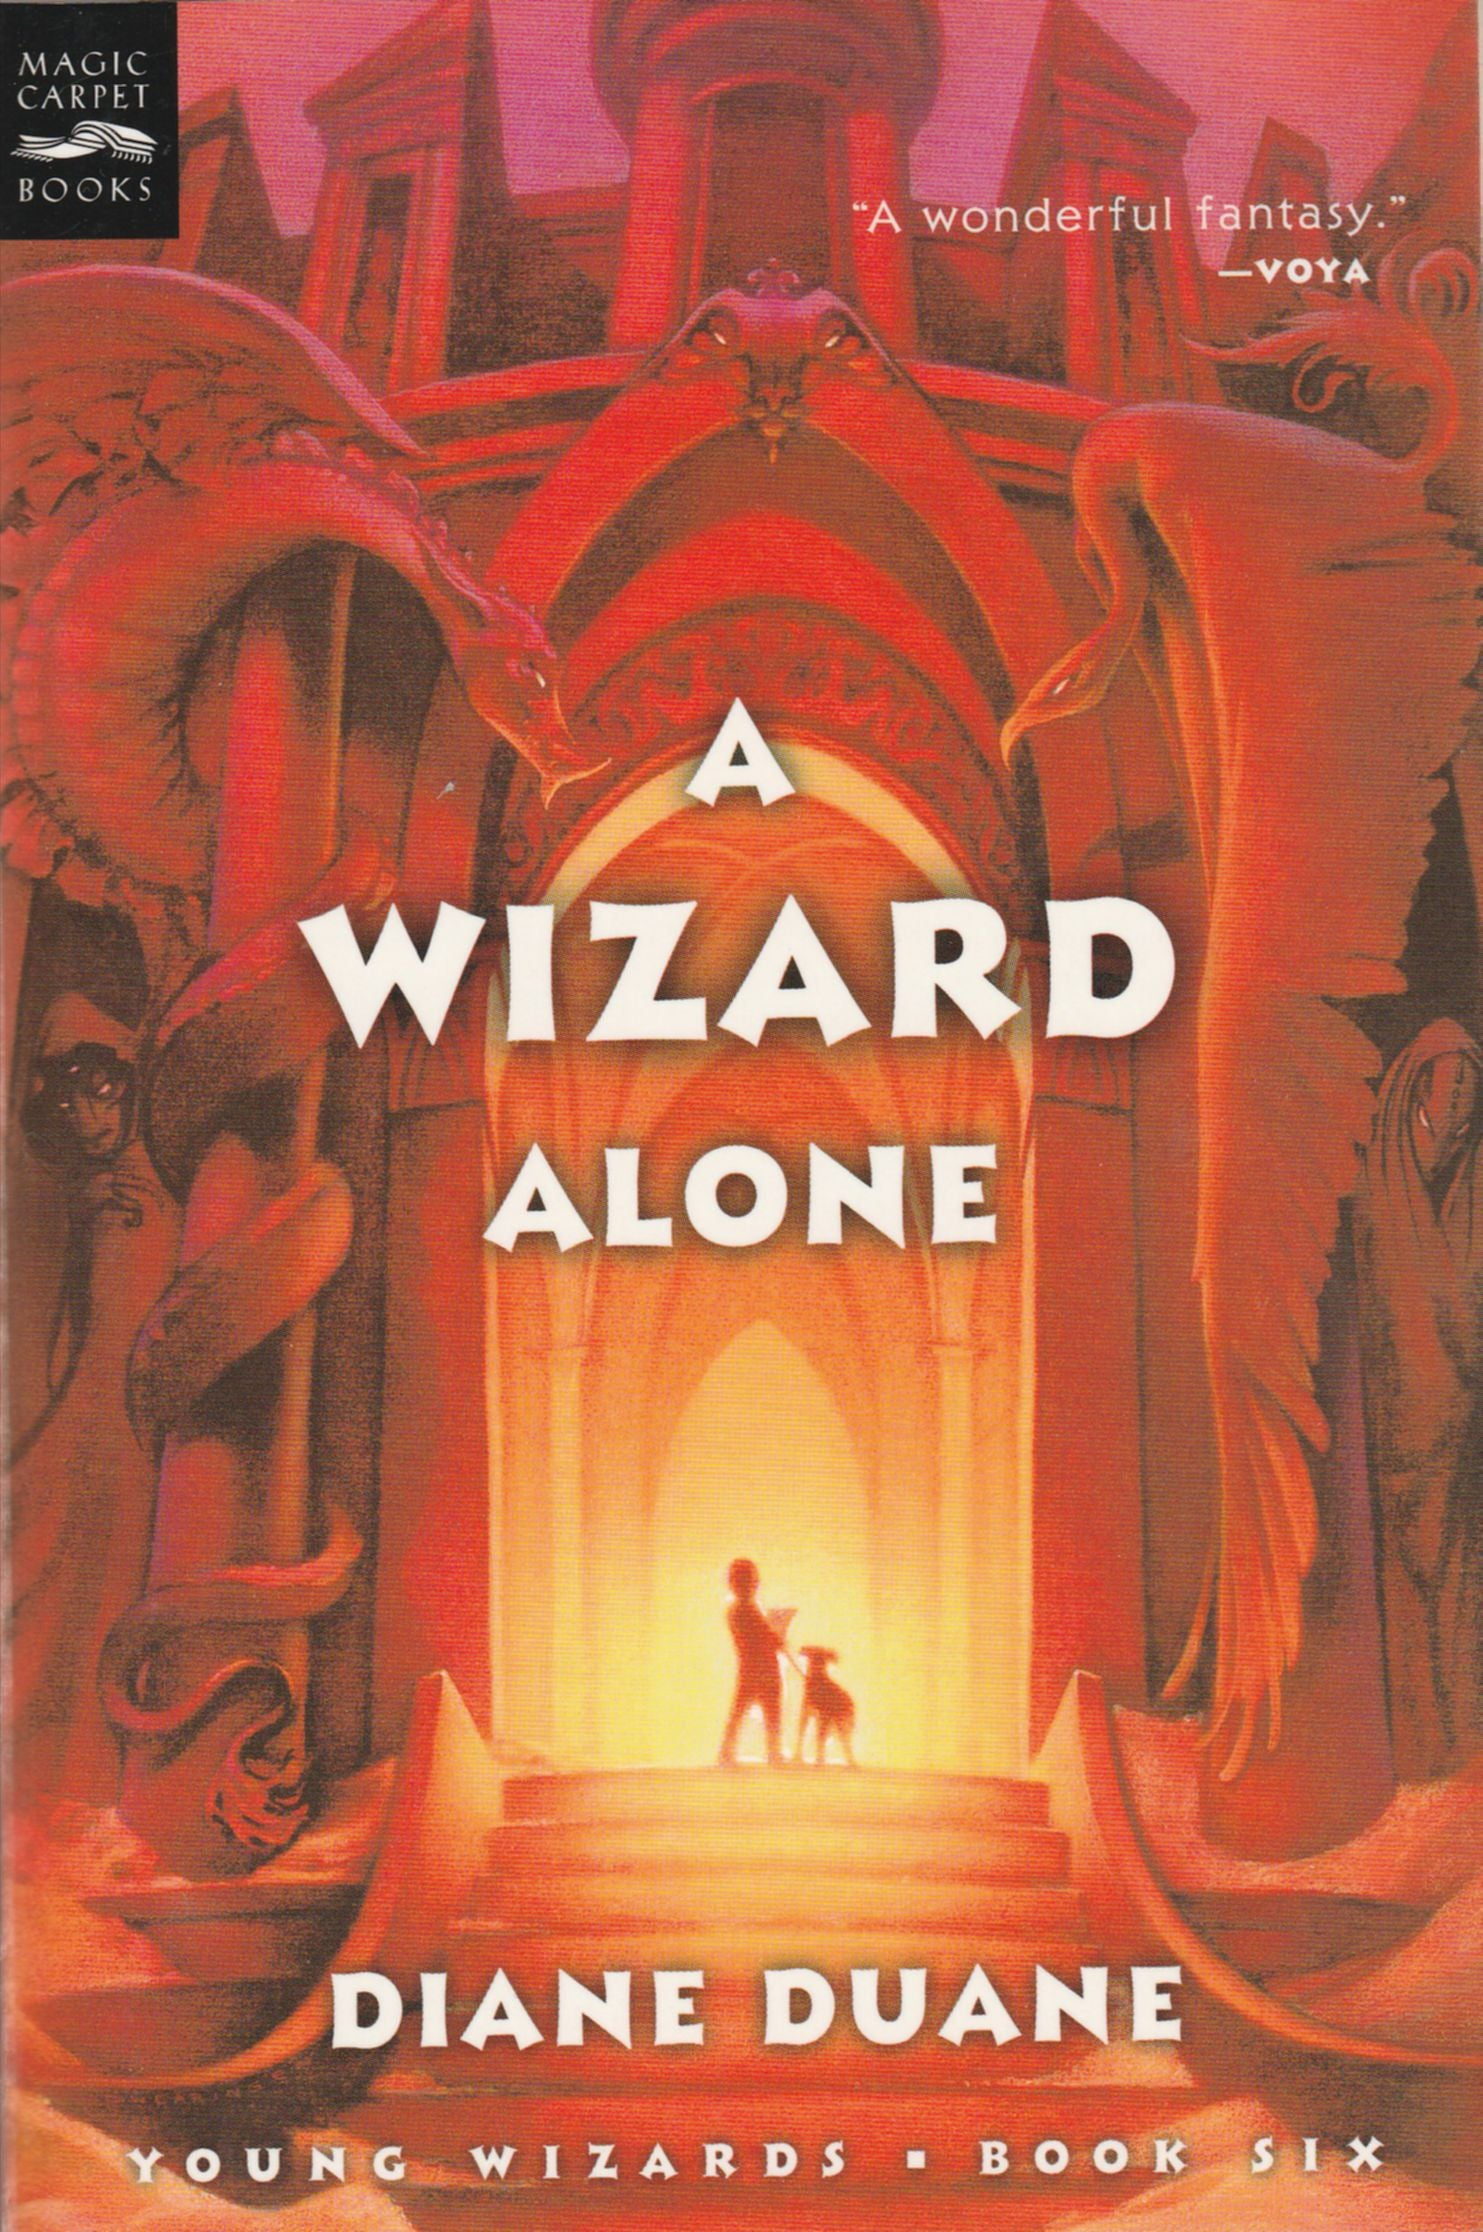 A Wizard Alone, digest format paperback, mint condition, final copies